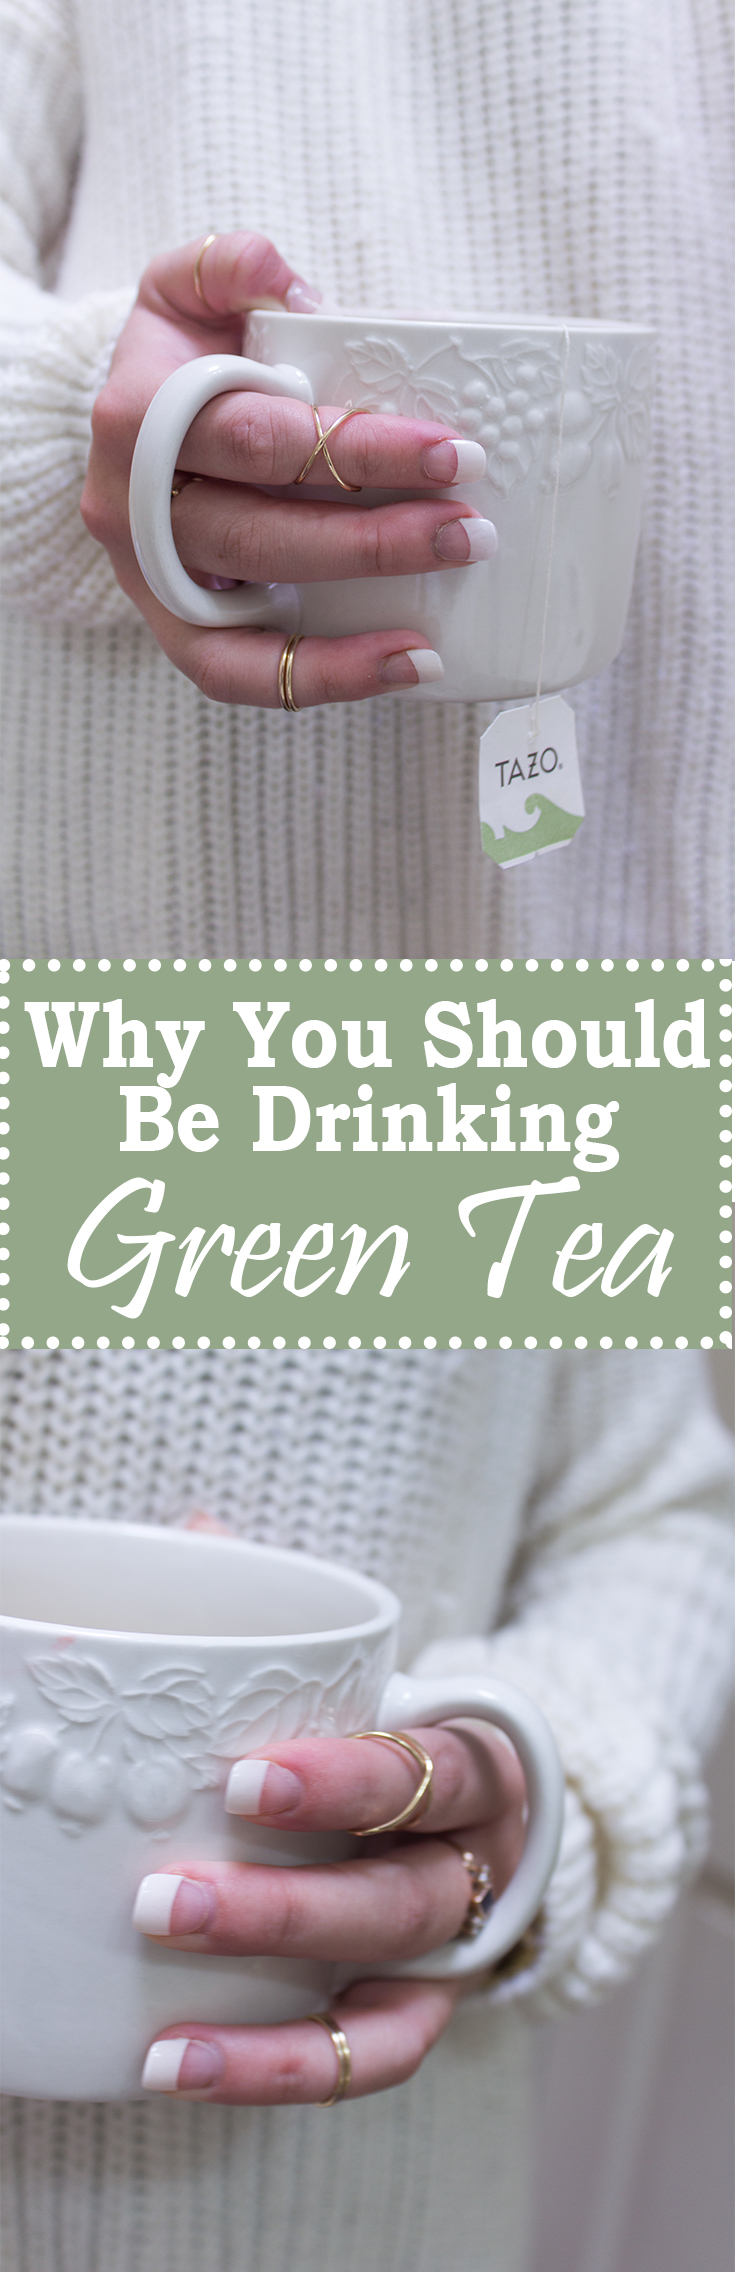 Why you should be drinking green tea. It has amazing health benefits like weight loss, boosted metabolism, strengthened immune stystem, and many more #natural #hairgrowth #natural #drink #skincare